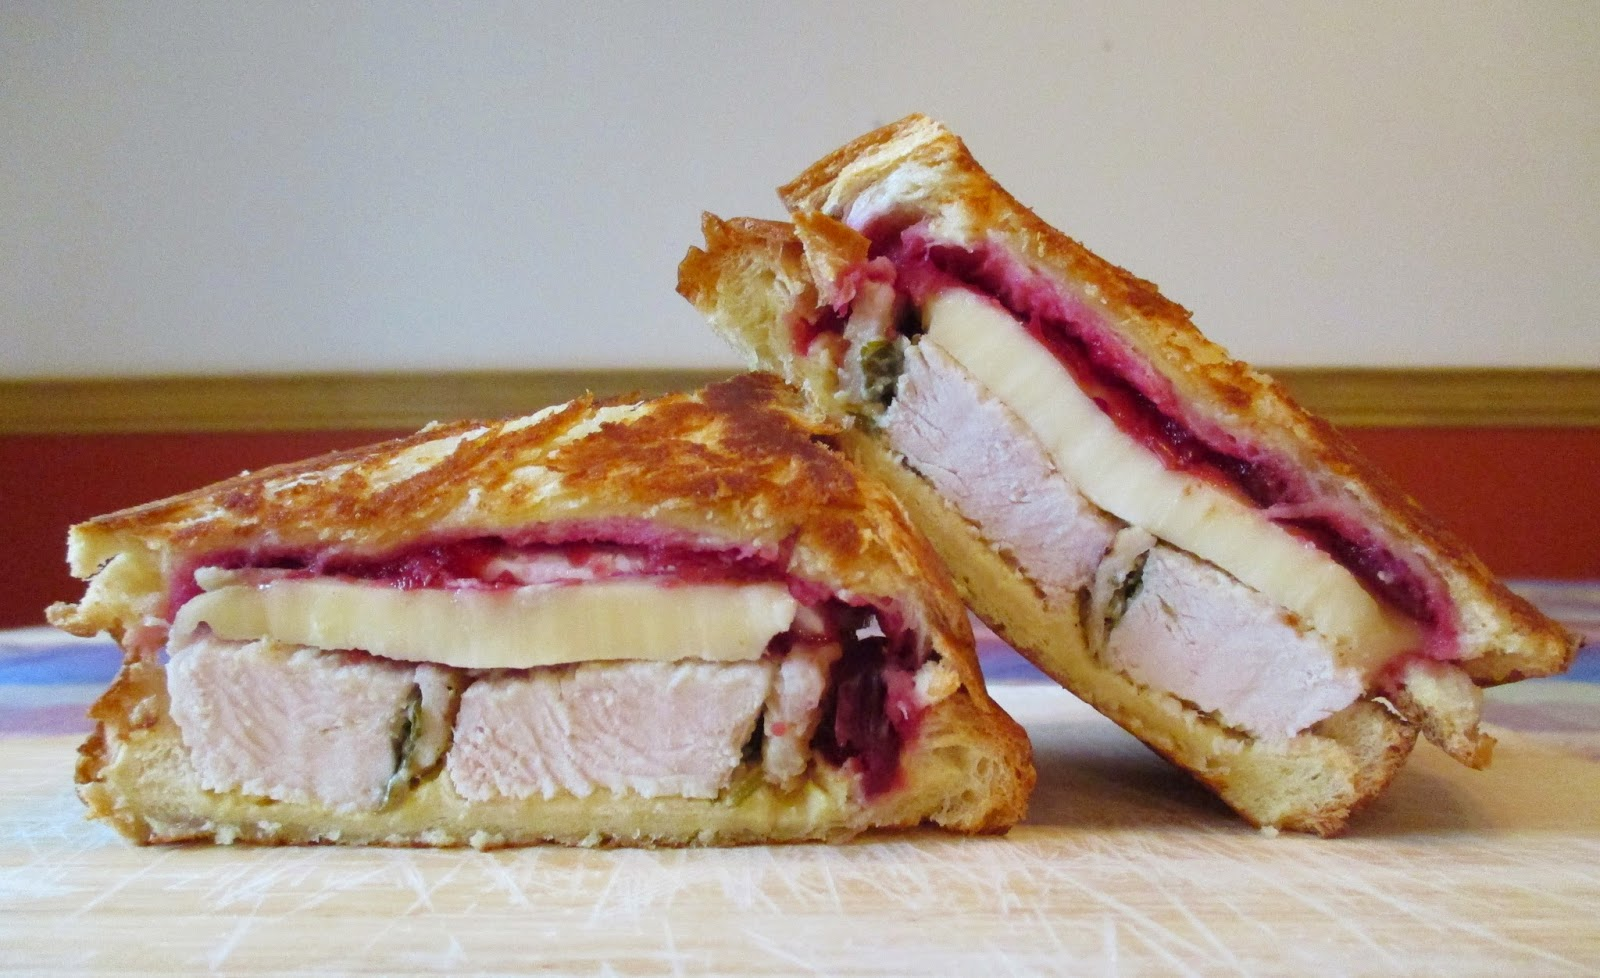 Grilled Turkey, Cranberry and Brie Sandwiches